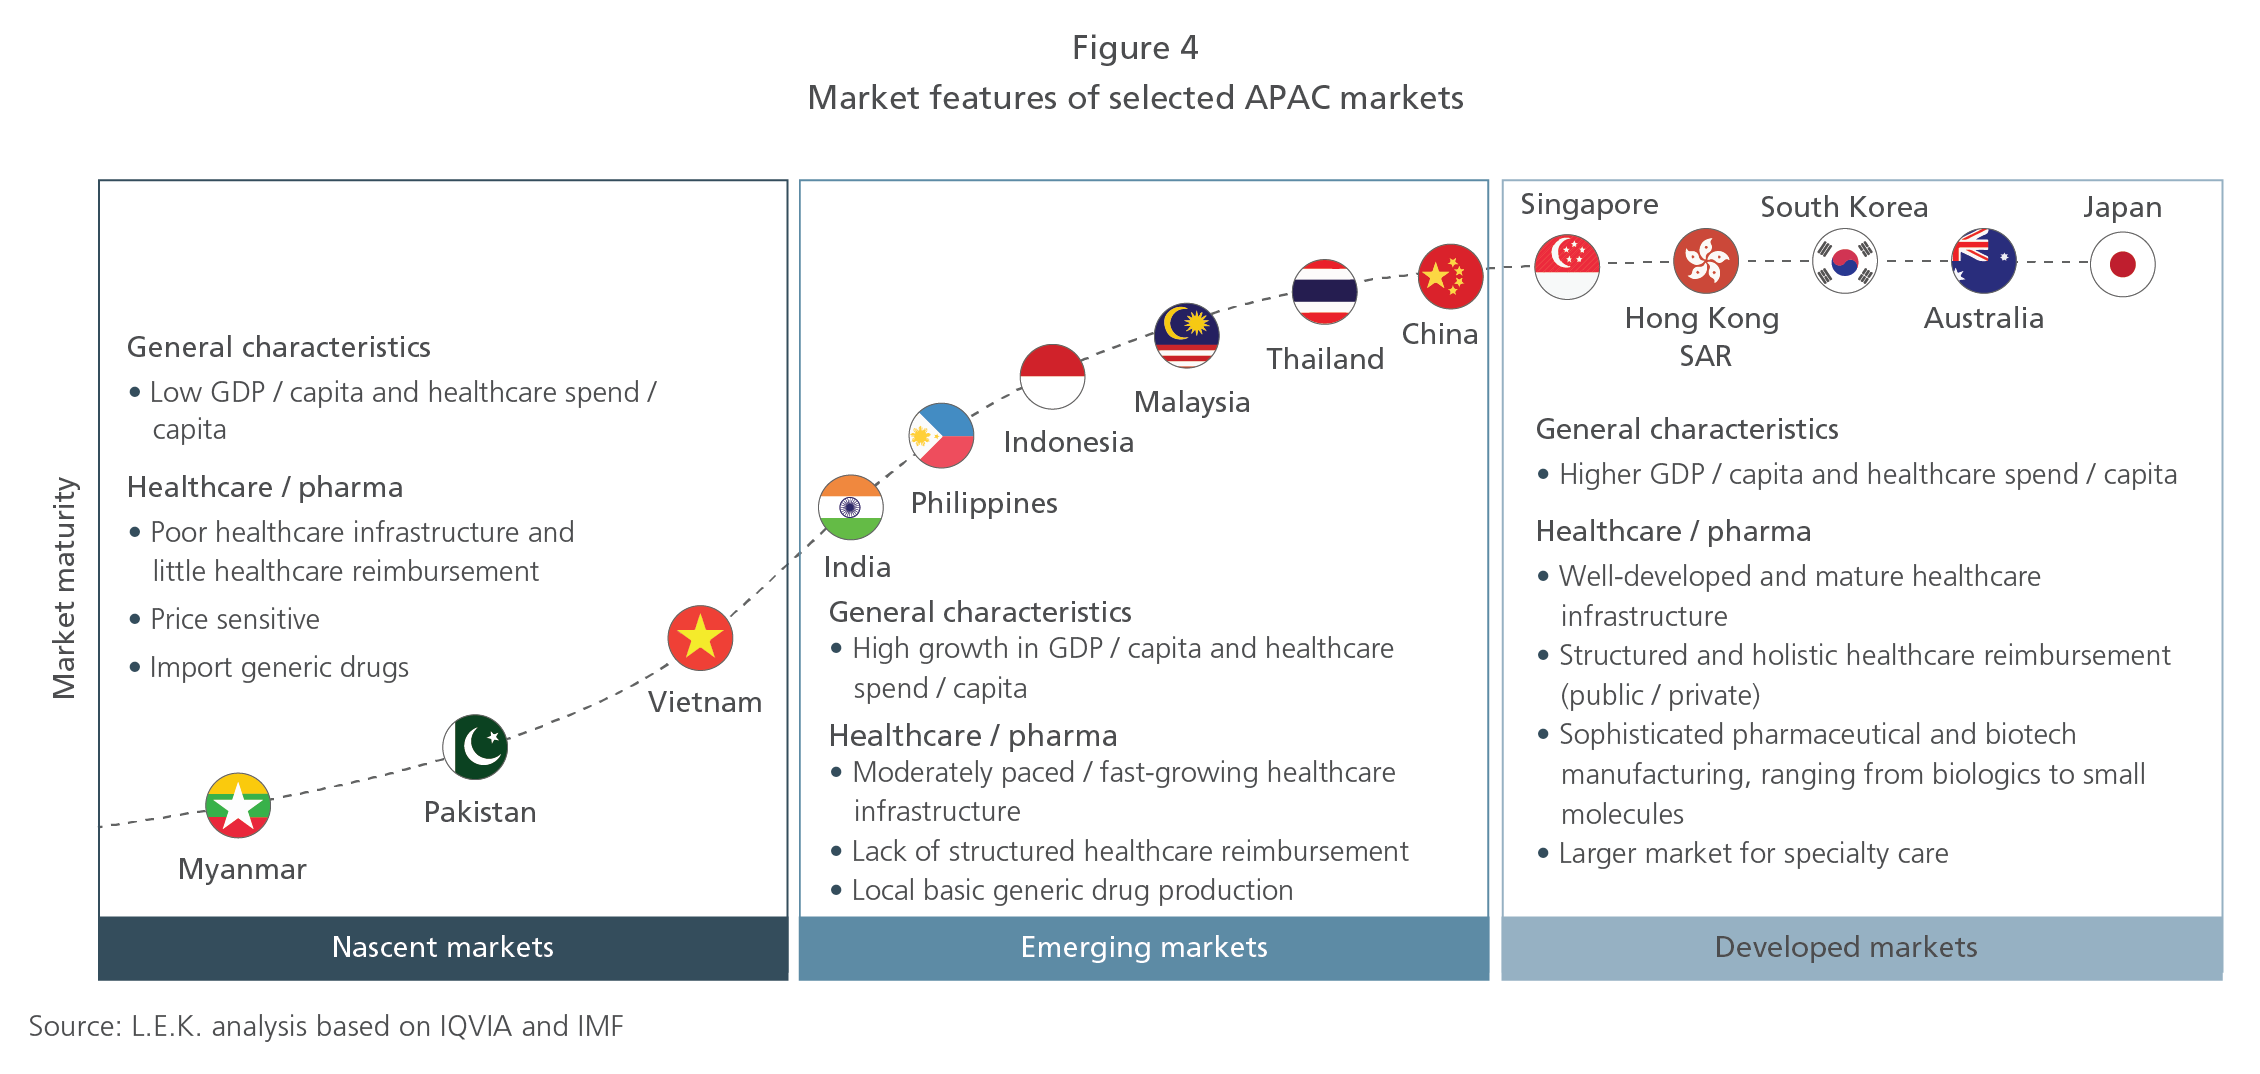 Market features of selected APAC markets